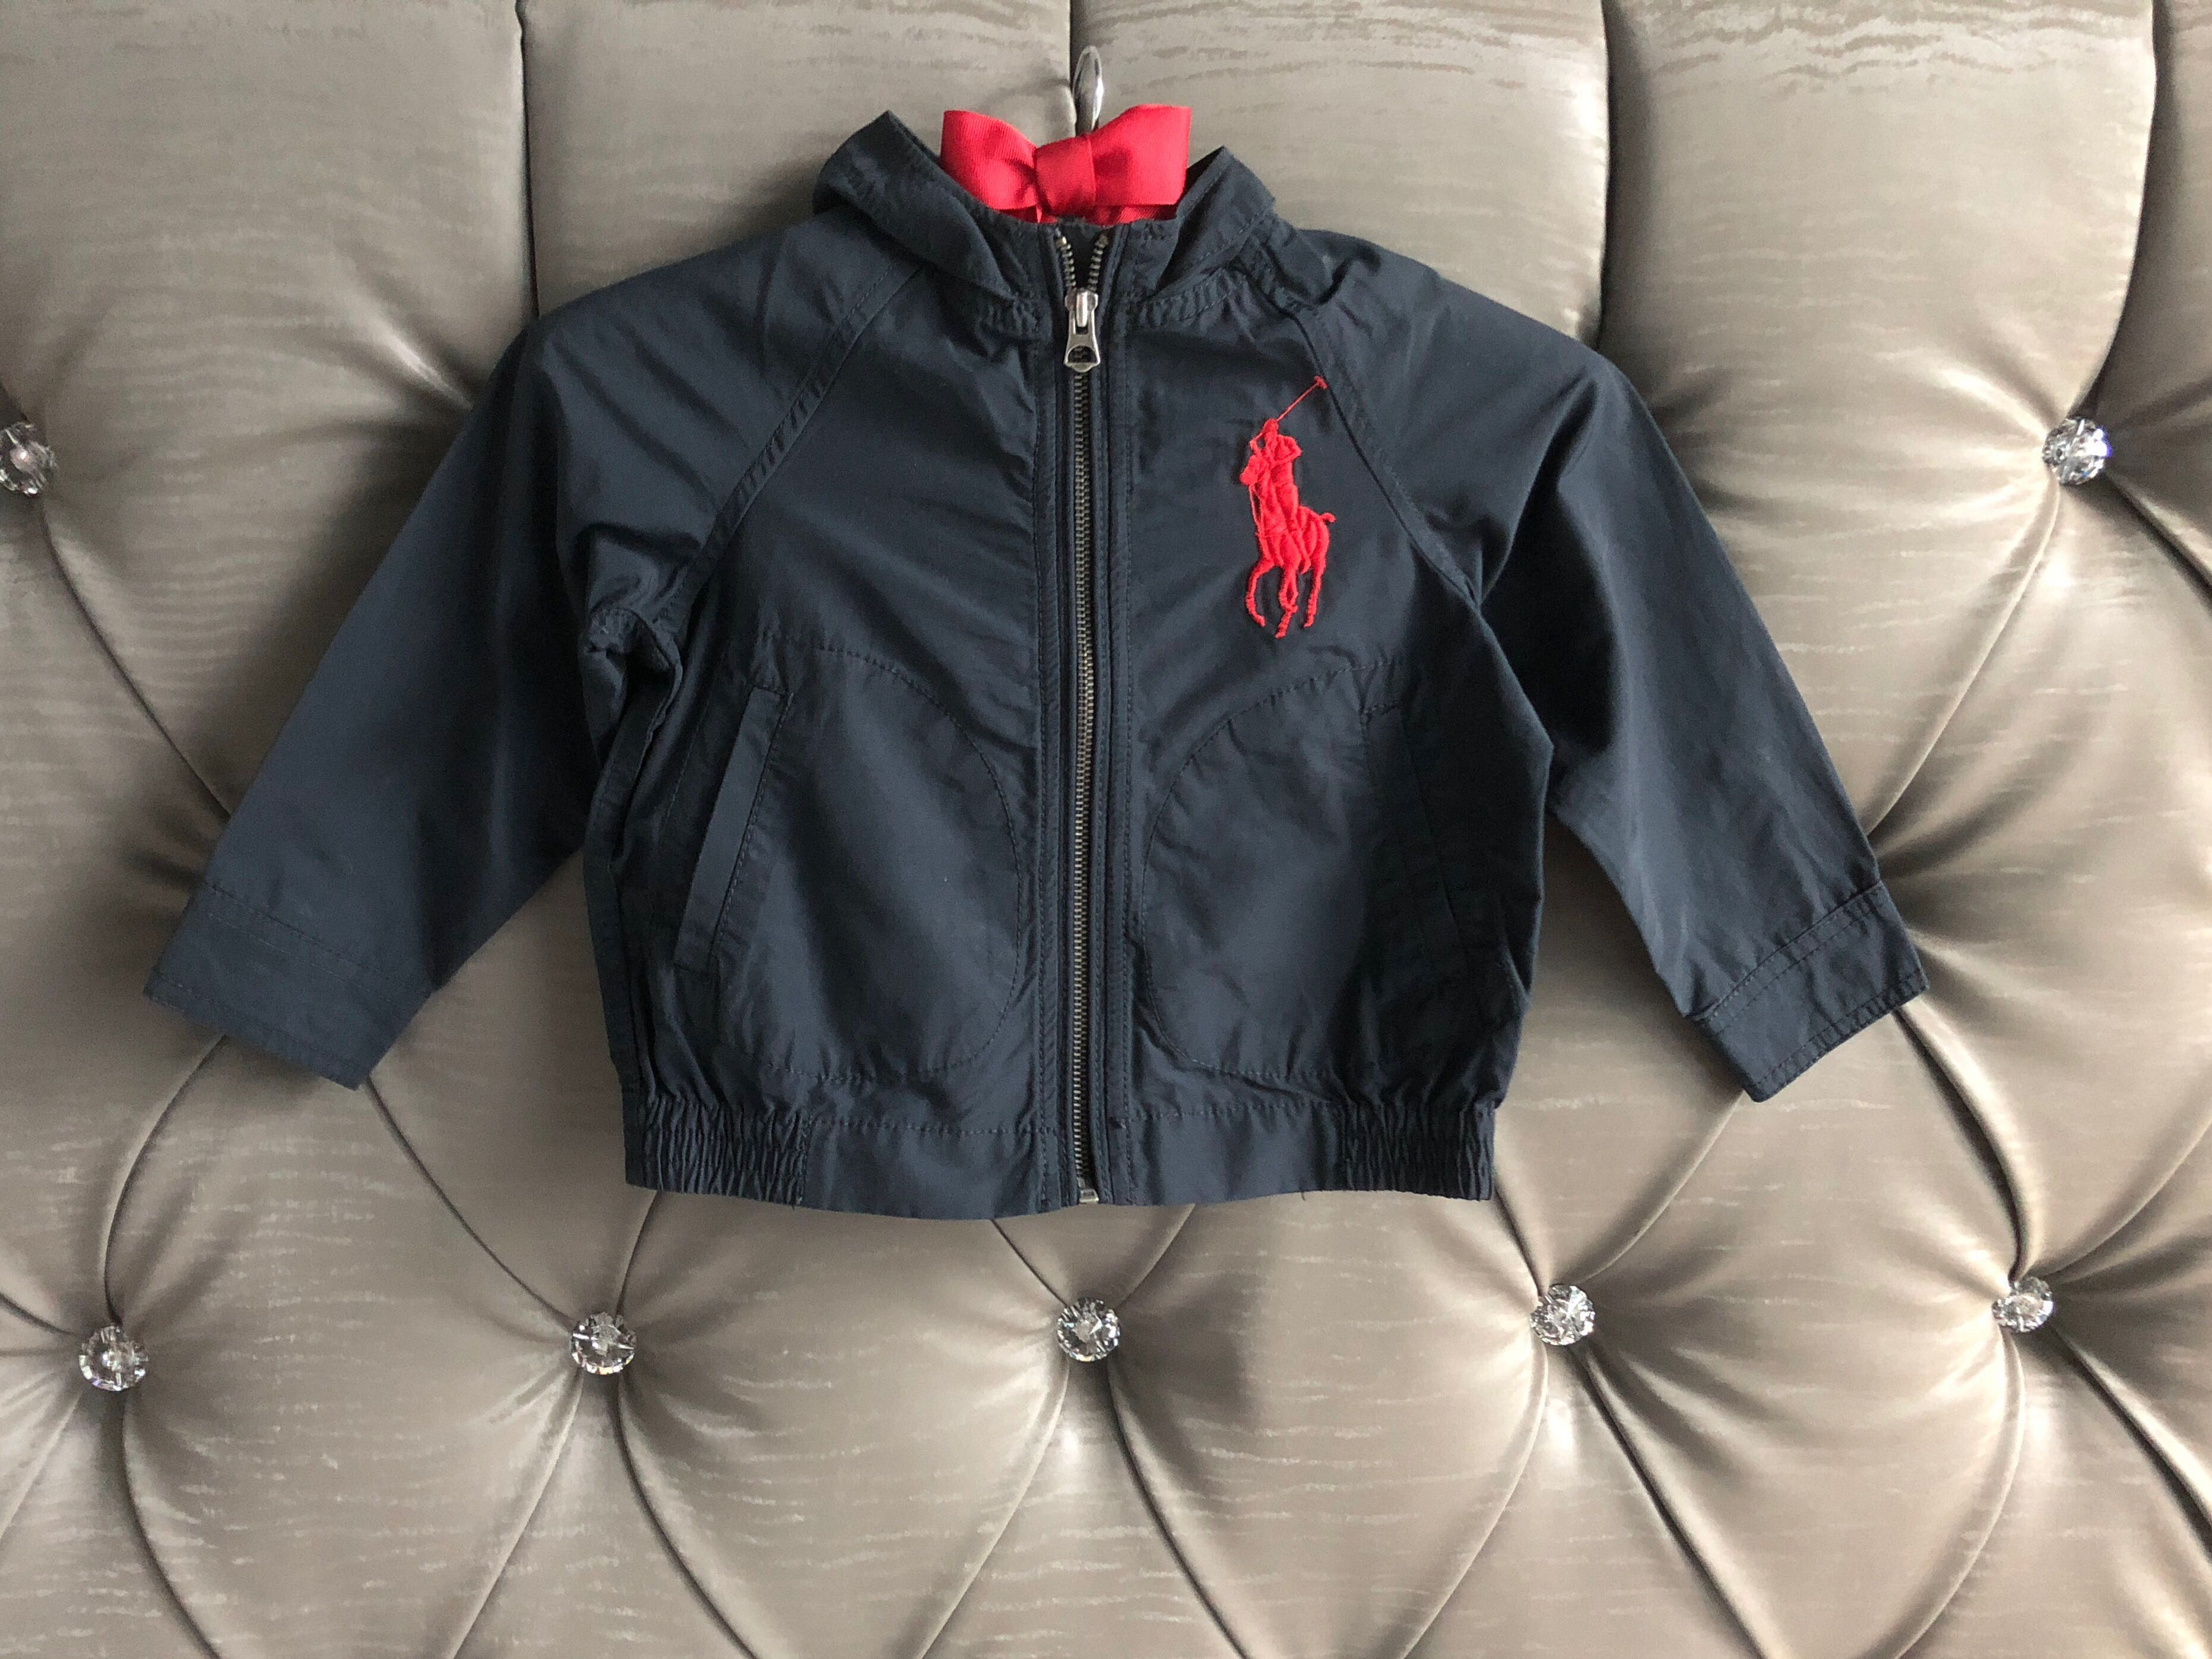 d59be82ff300a Preloved Polo Ralph Lauren 2T Hooded Jacket Windbreaker for Toddler ...